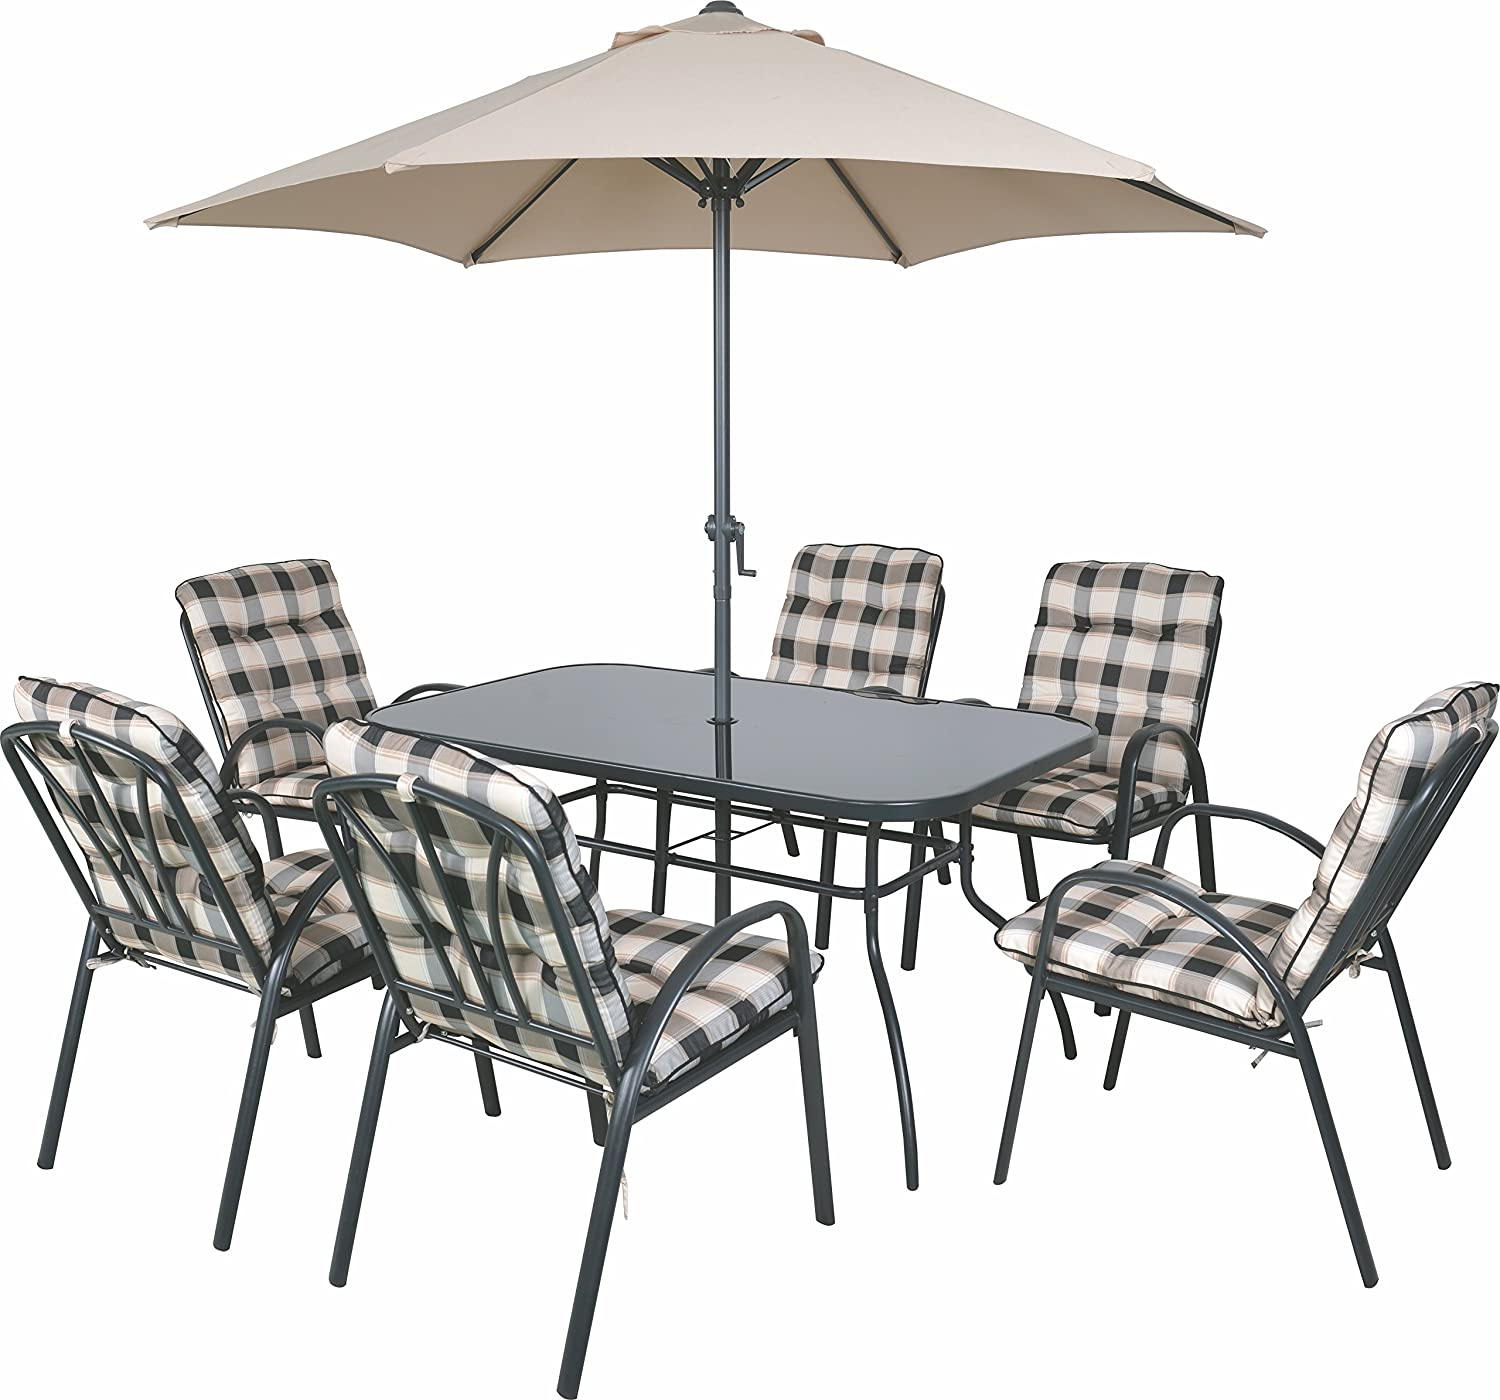 6 Seater Outdoor Garden Furniture Table Chairs & Parasol Dining